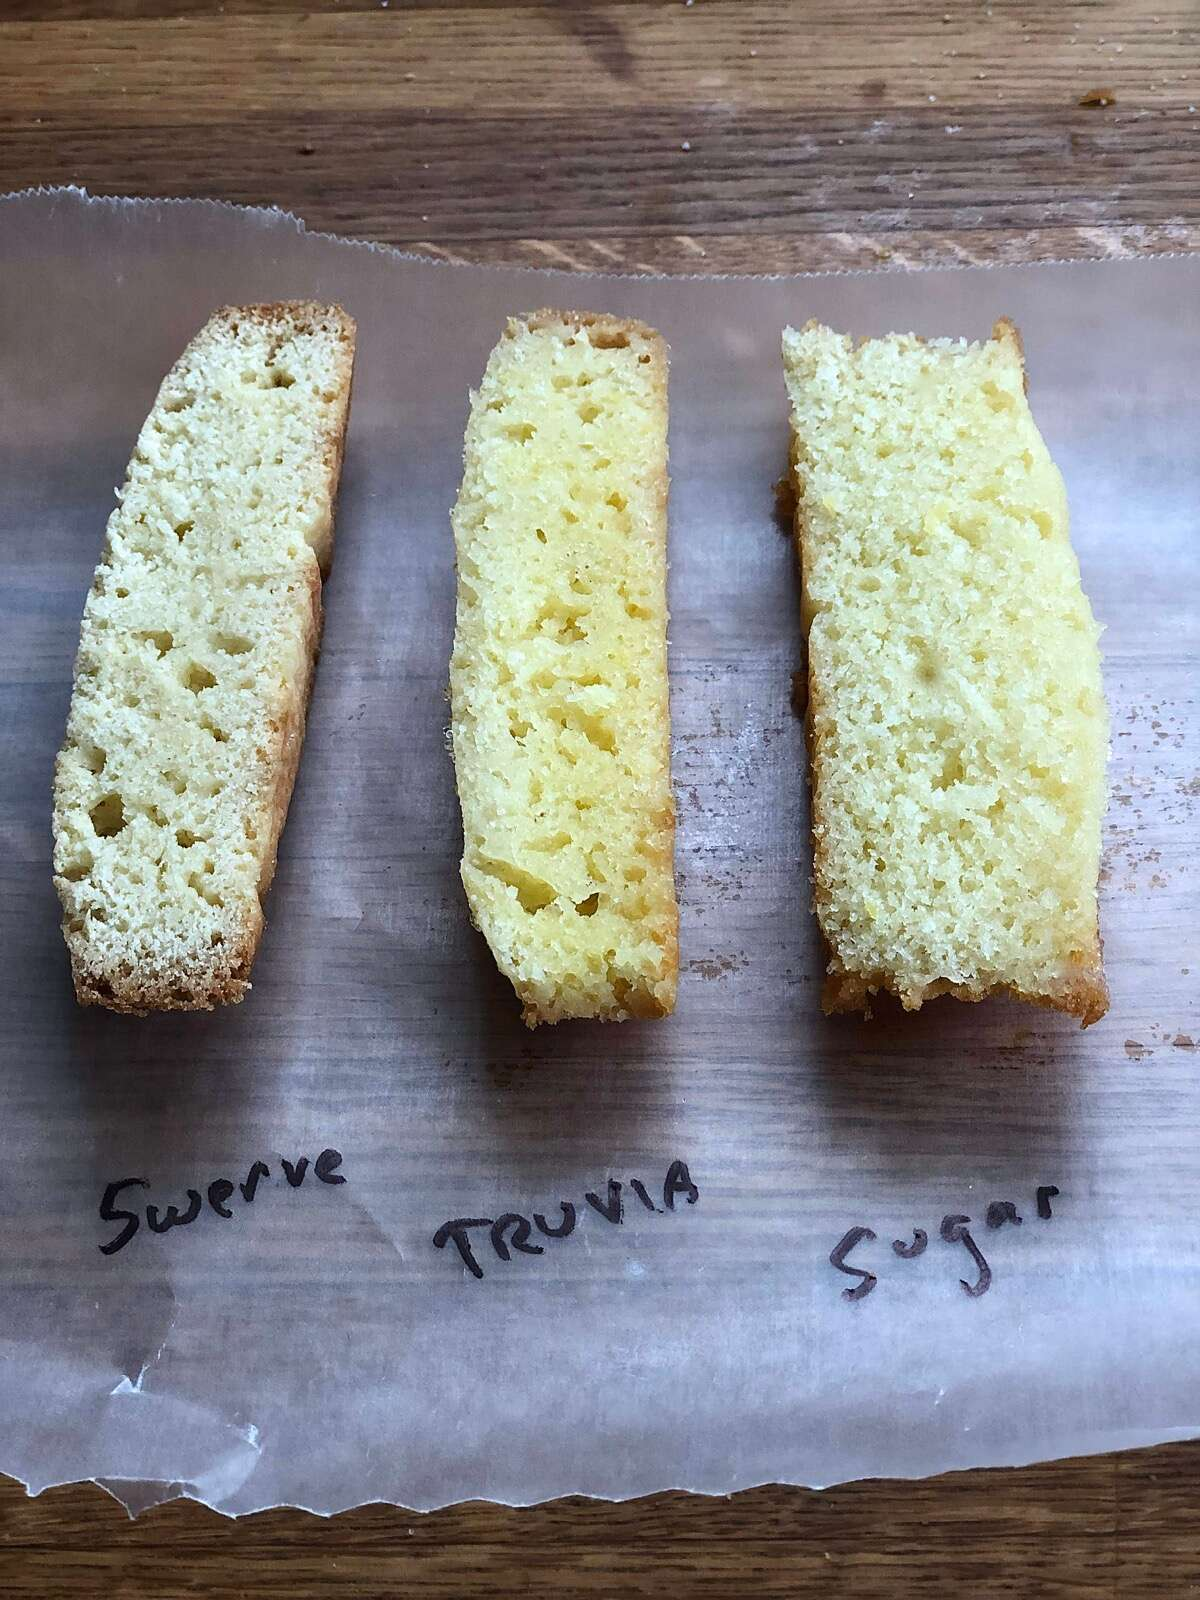 Three slices of cake baked with three different sweeteners, showing difference in rise and interior texture.